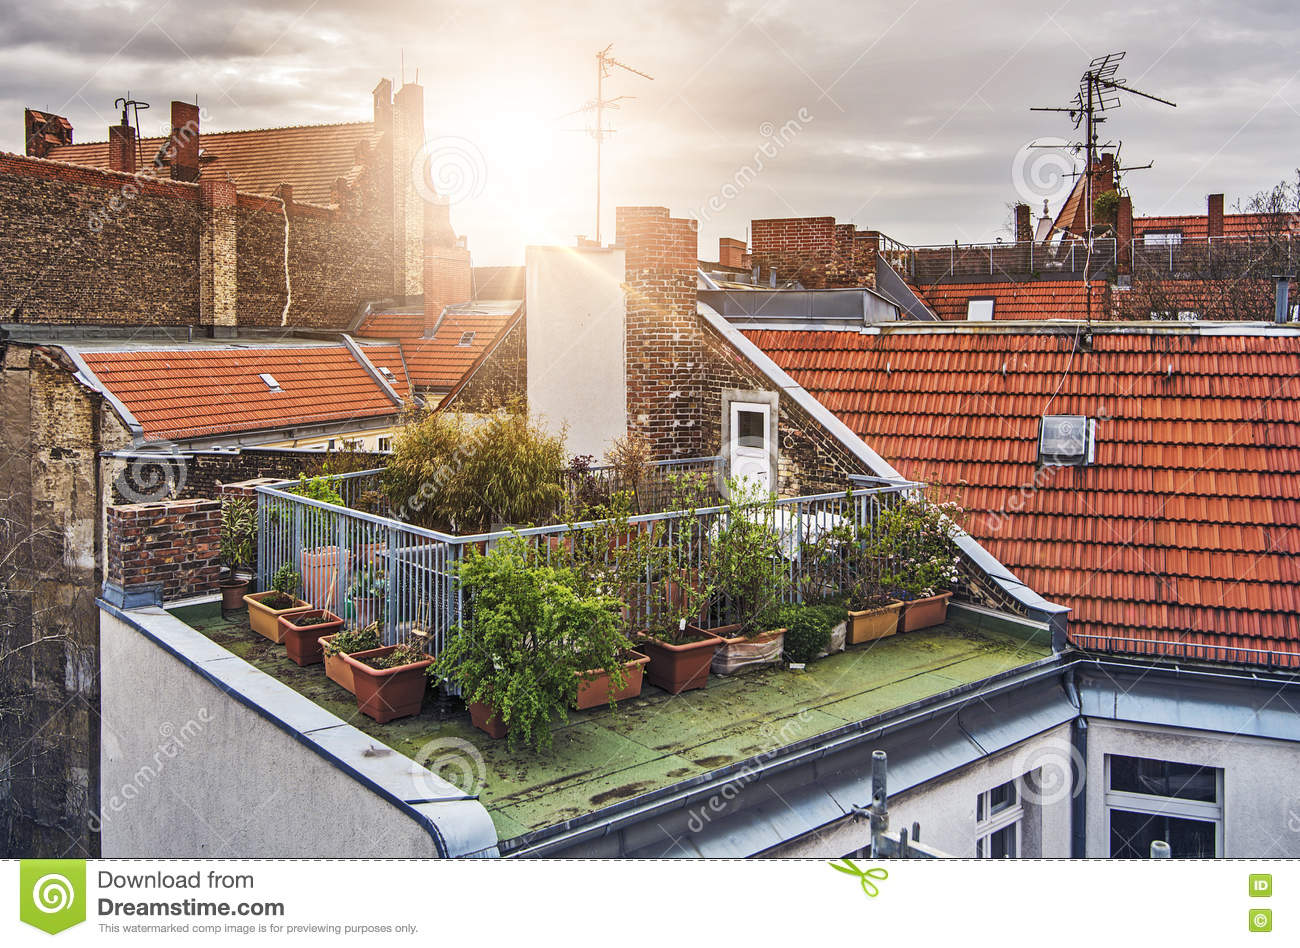 6 064 Rooftop Garden Photos Free Royalty Free Stock Photos From Dreamstime